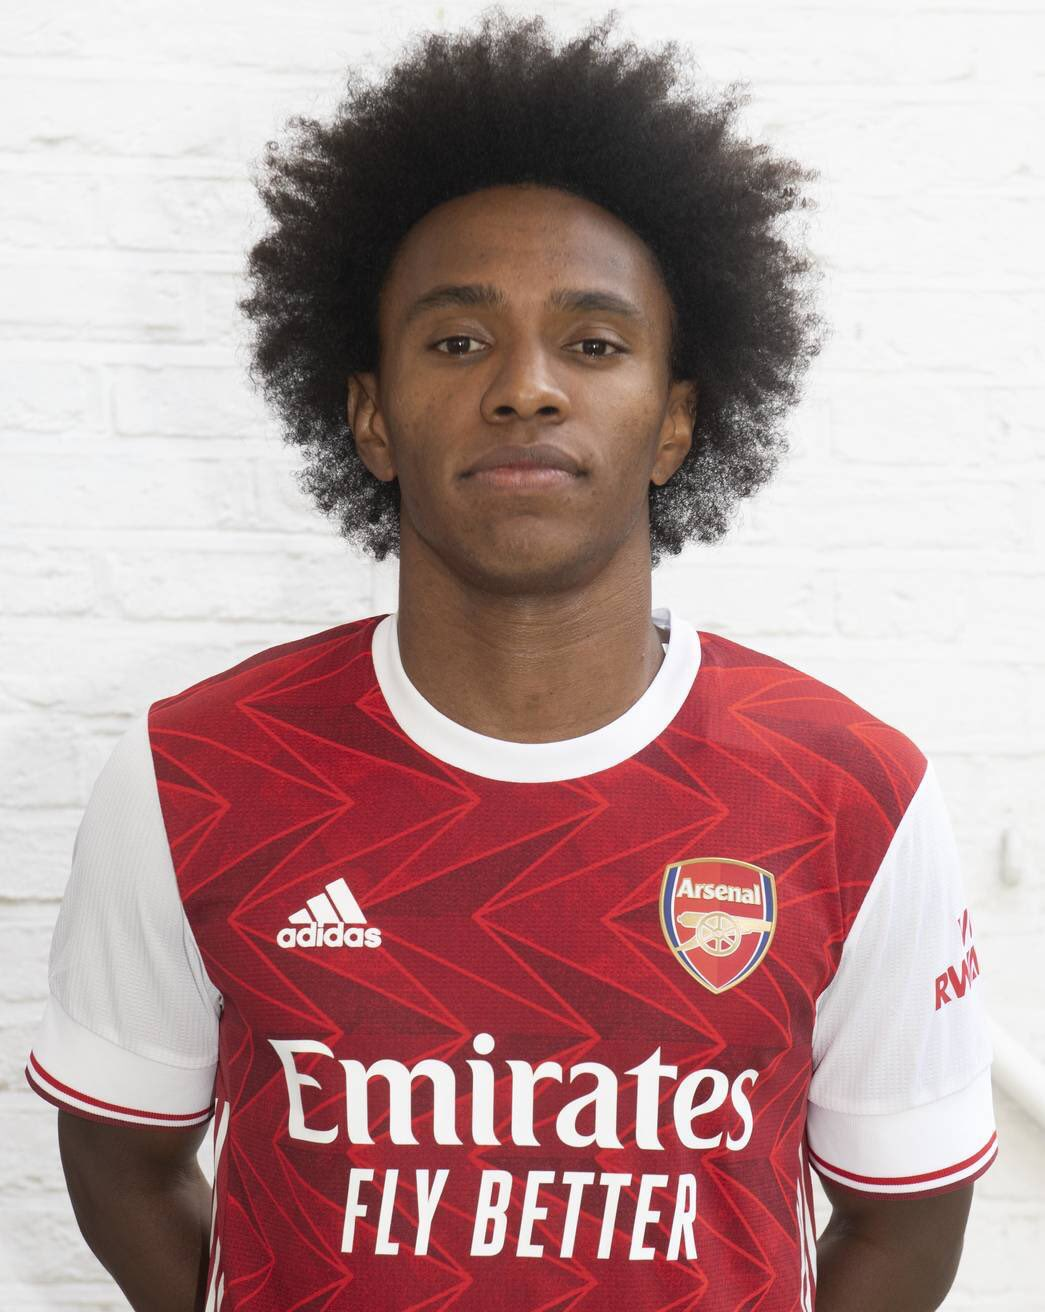 Arsenal Completes Signing Of Willian From Chelsea